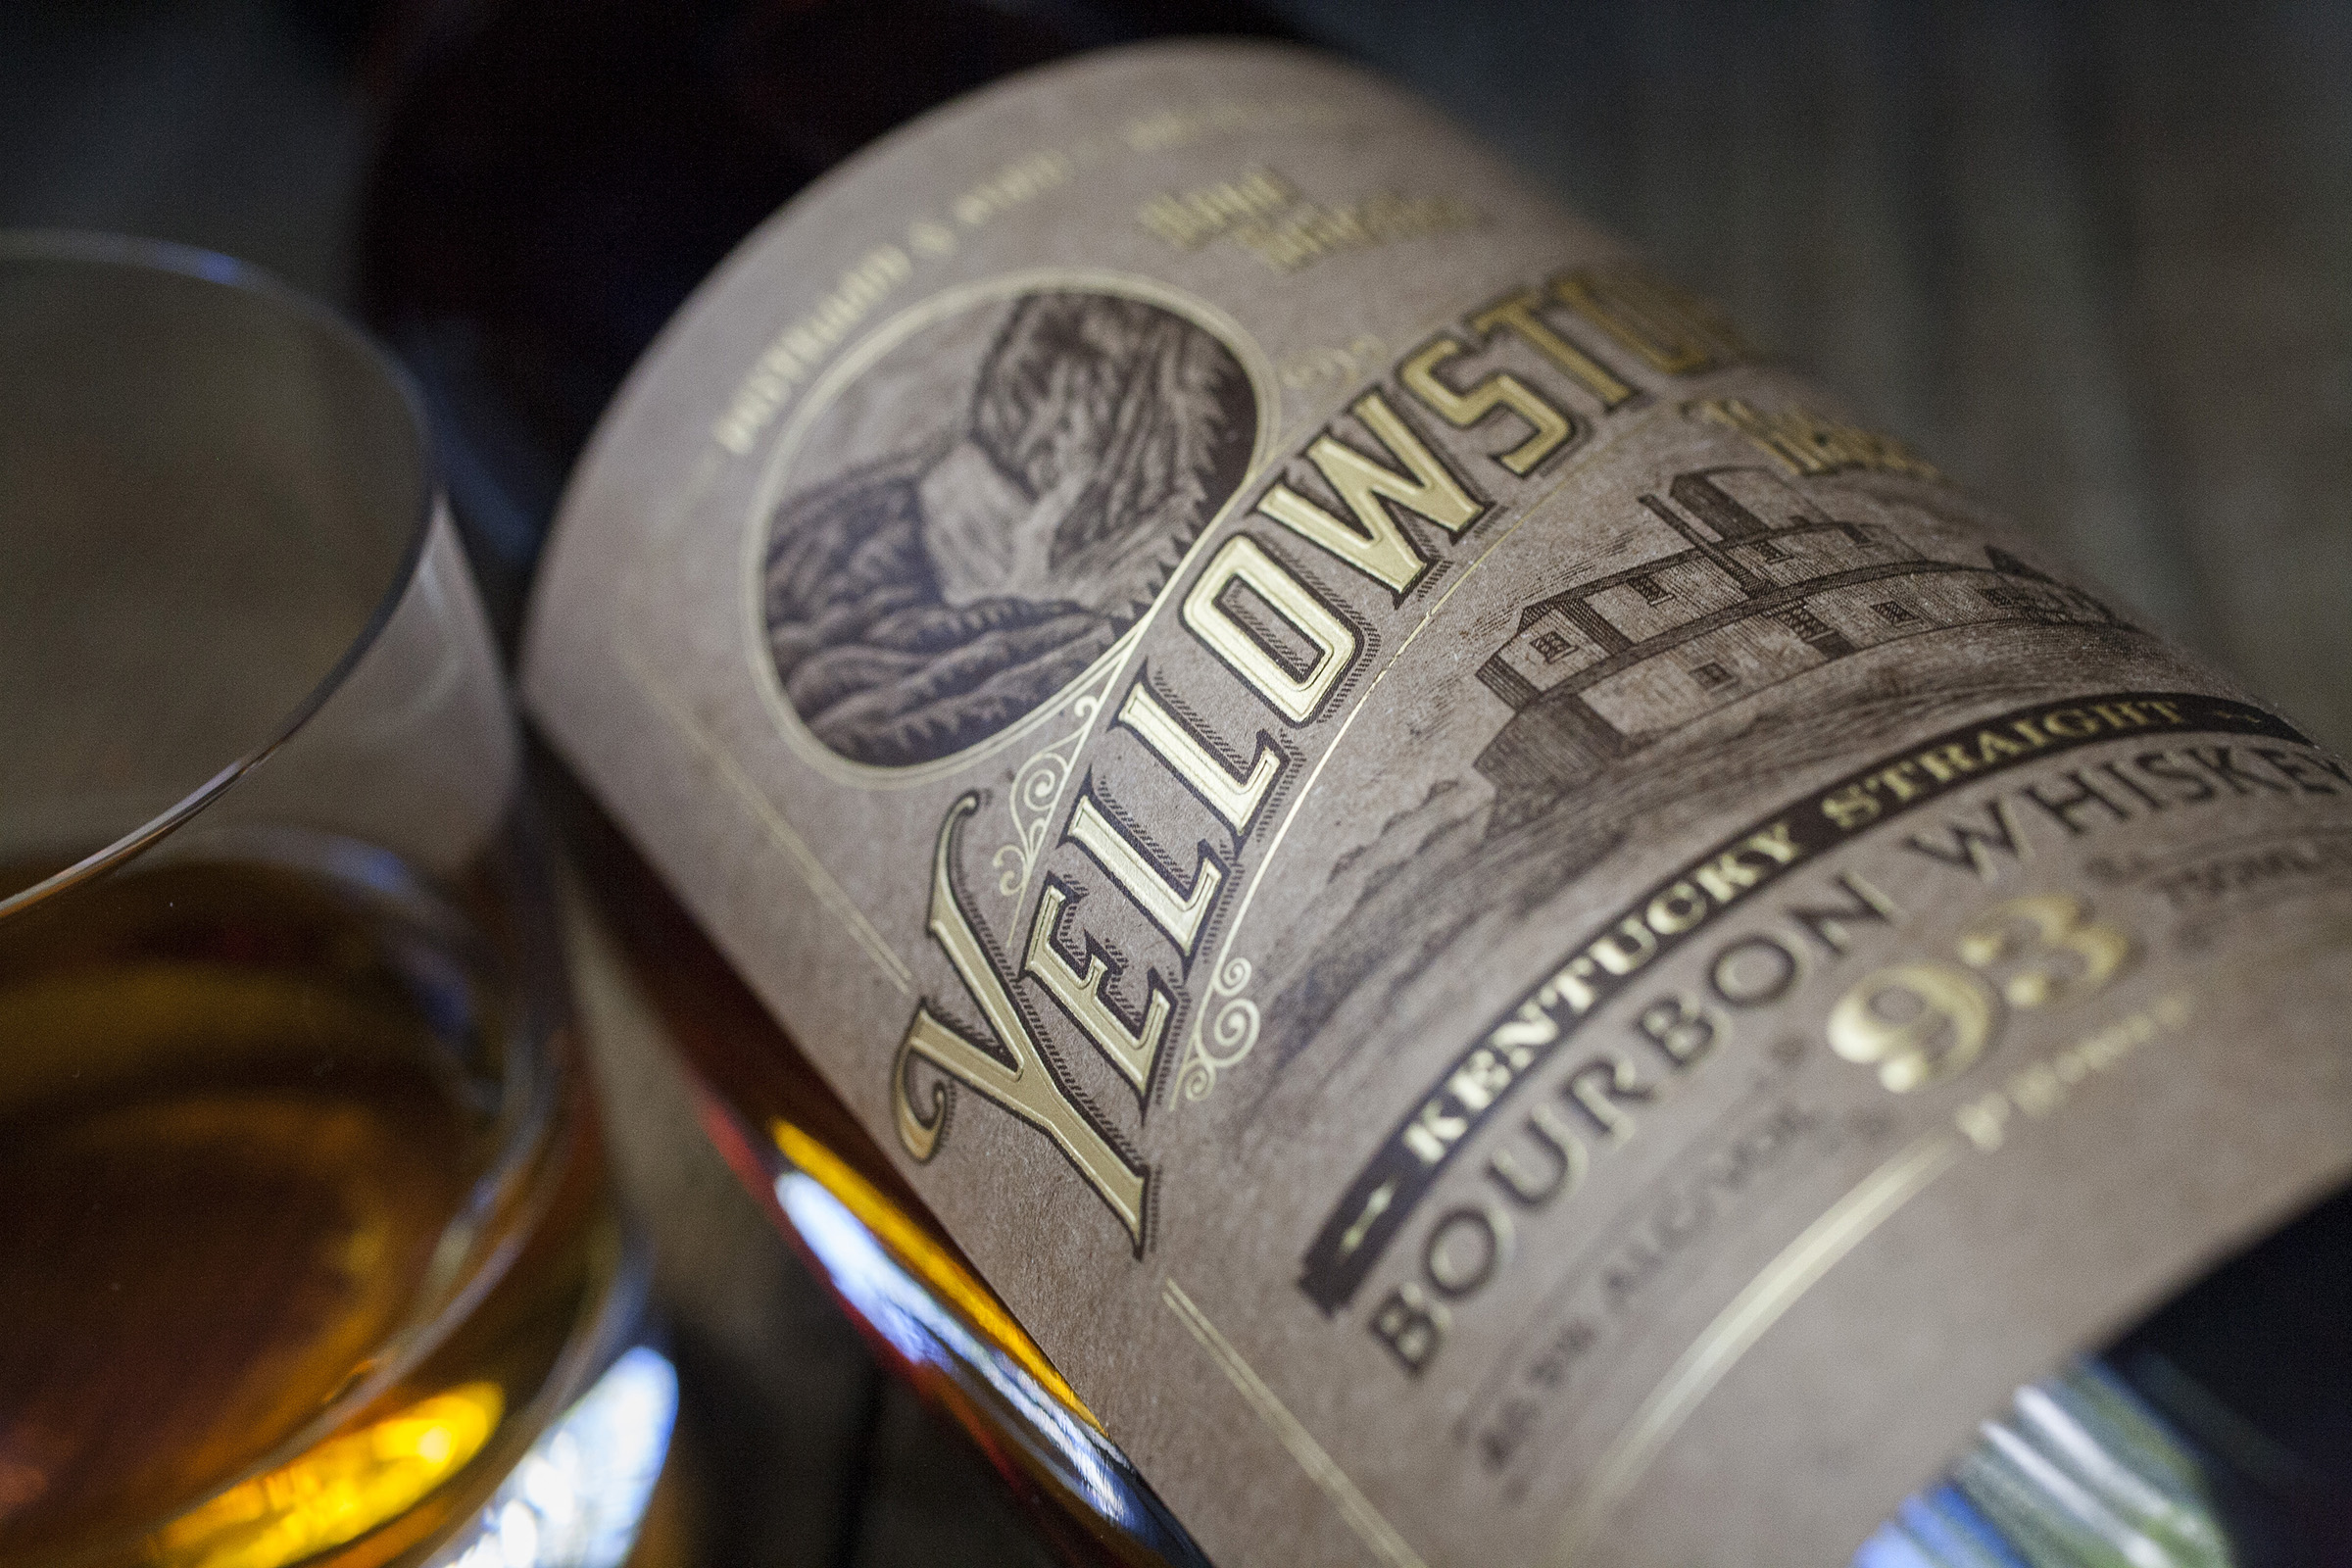 Yellowstone Select Bourbon packaging and branding by David Cole Creative in Seattle Washington USA